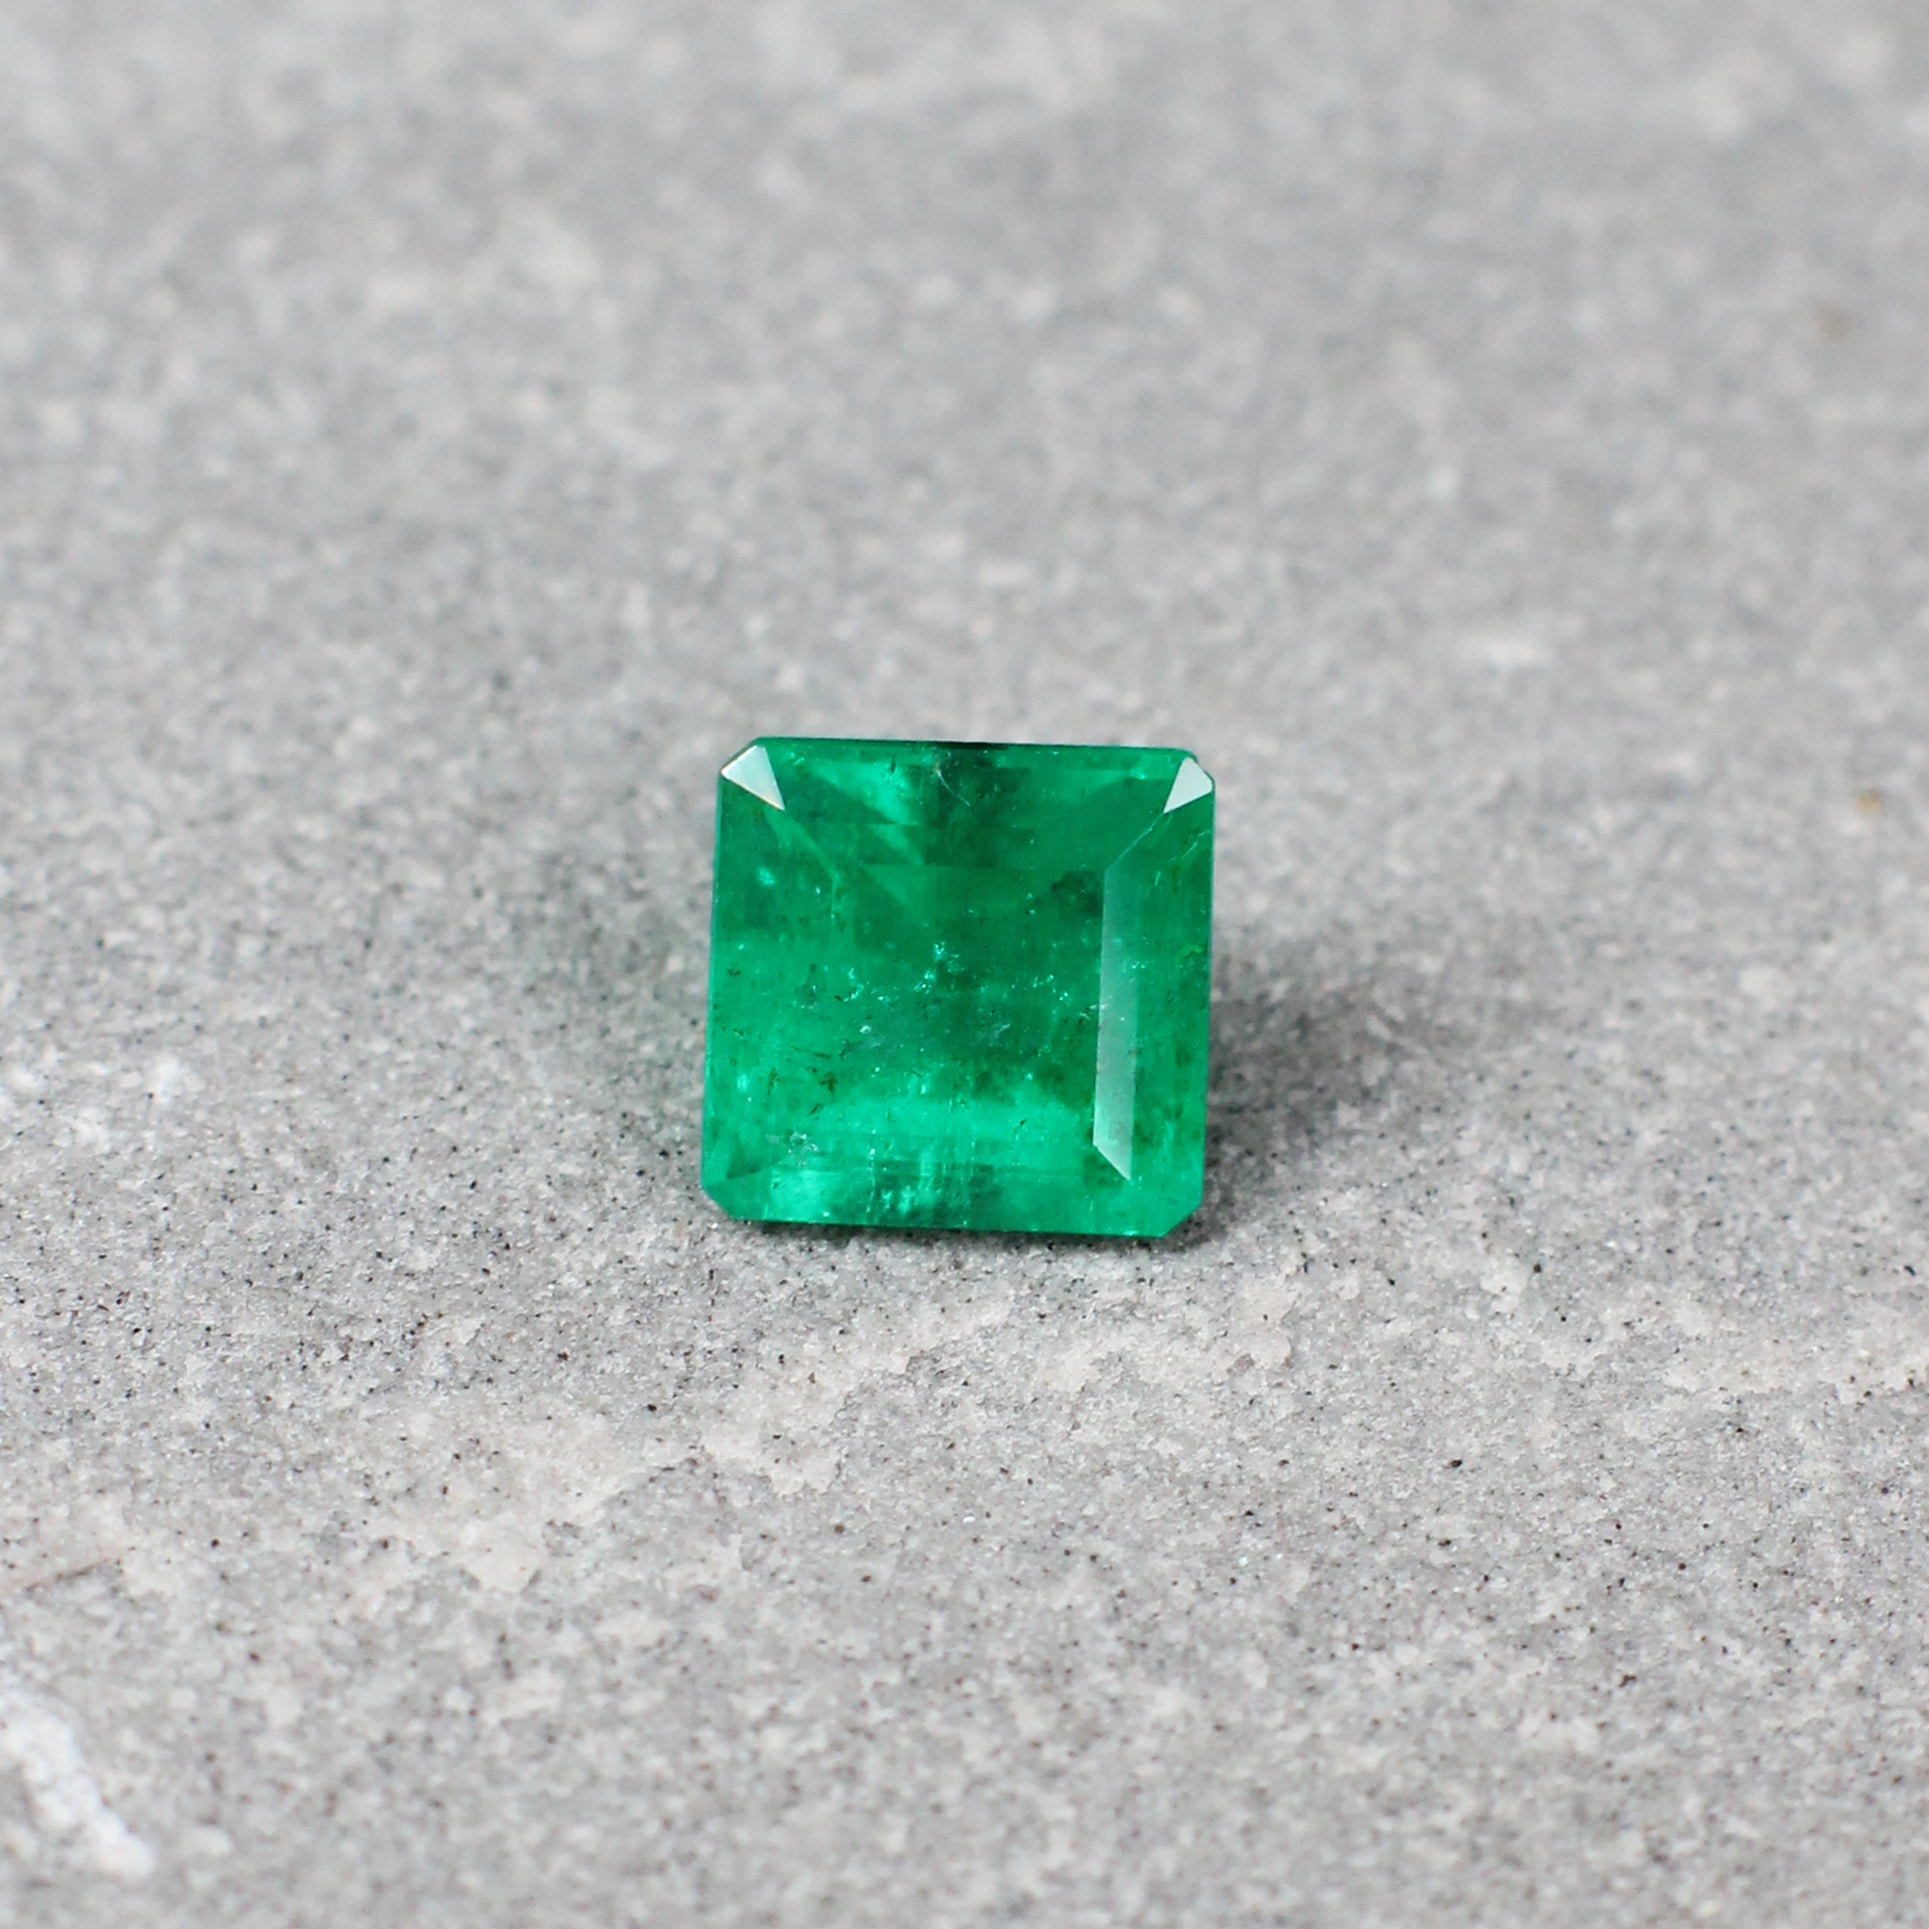 1.08 ct emerald cut green emerald